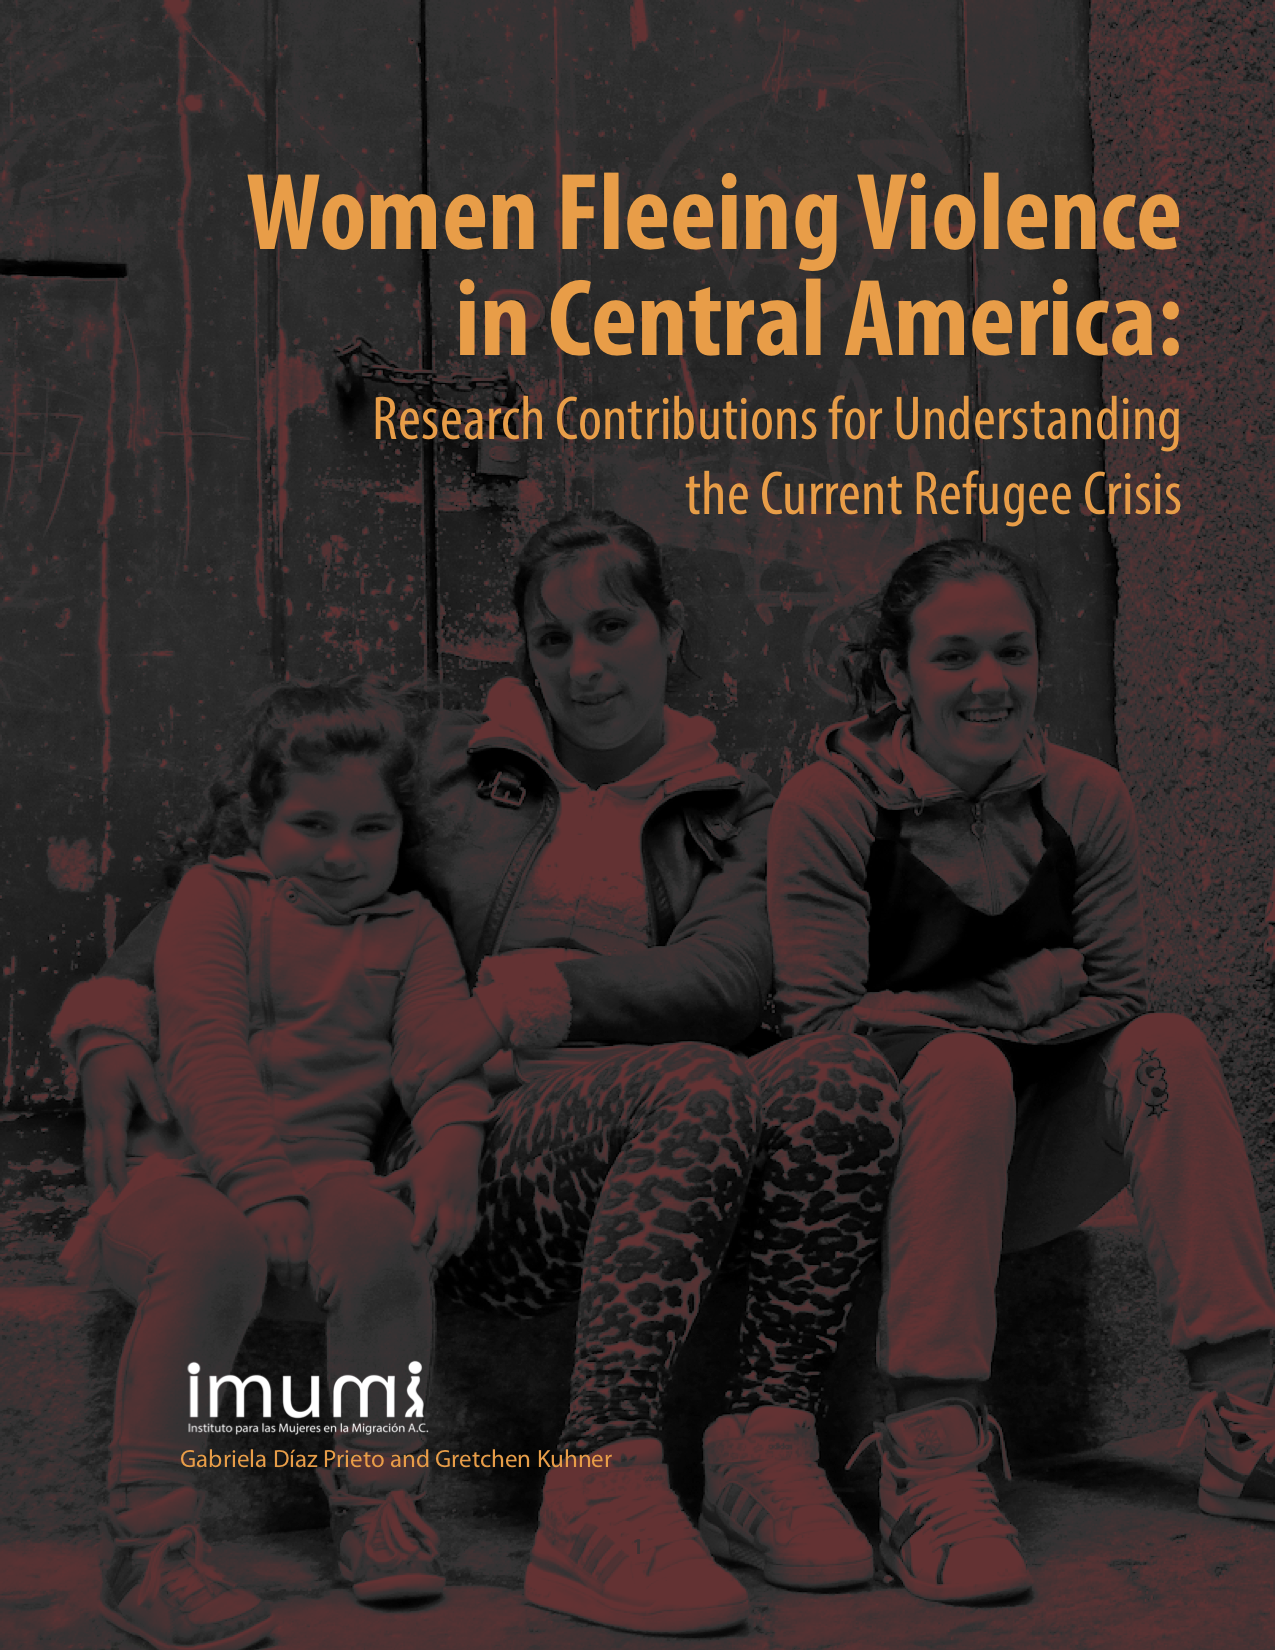 Women Fleeing Violence in Central America, inglés (dragged)